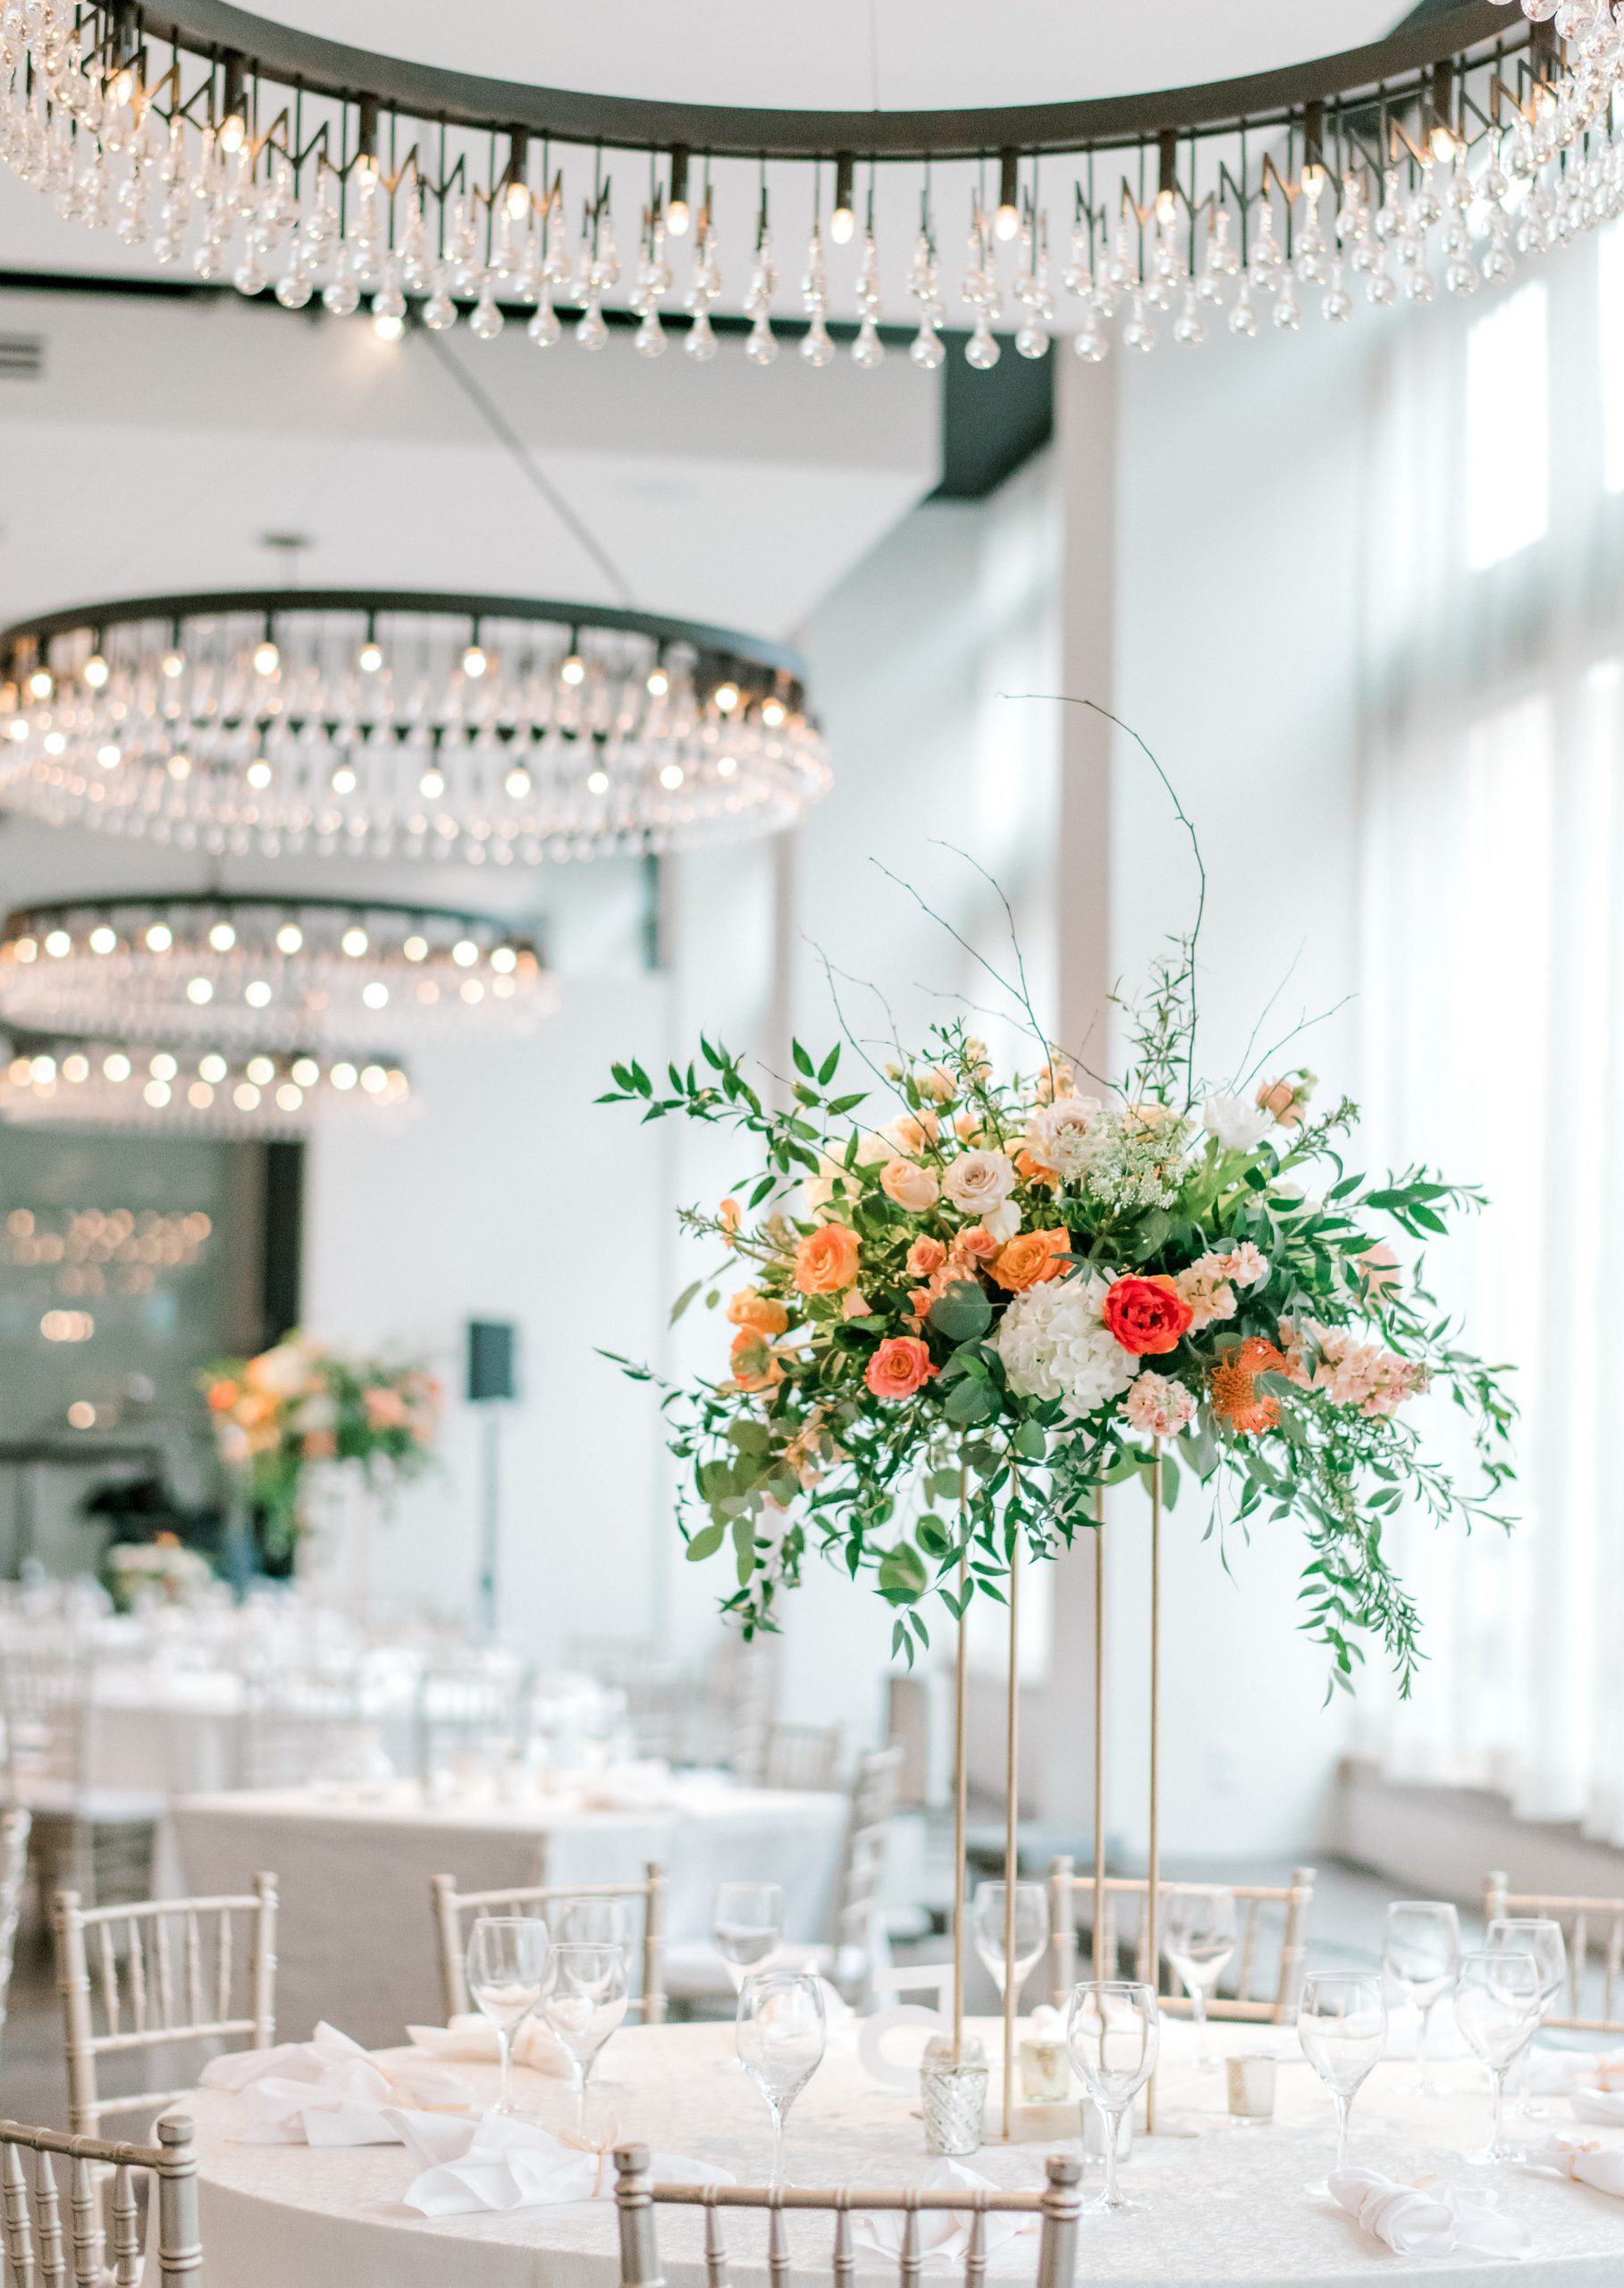 Lush garden style centerpieces float on contemporary open risers above the tables for a chic wedding at Hotel Covington. Soft foliage and pastel spring flowers with vibrant tulips fill the unique florals.